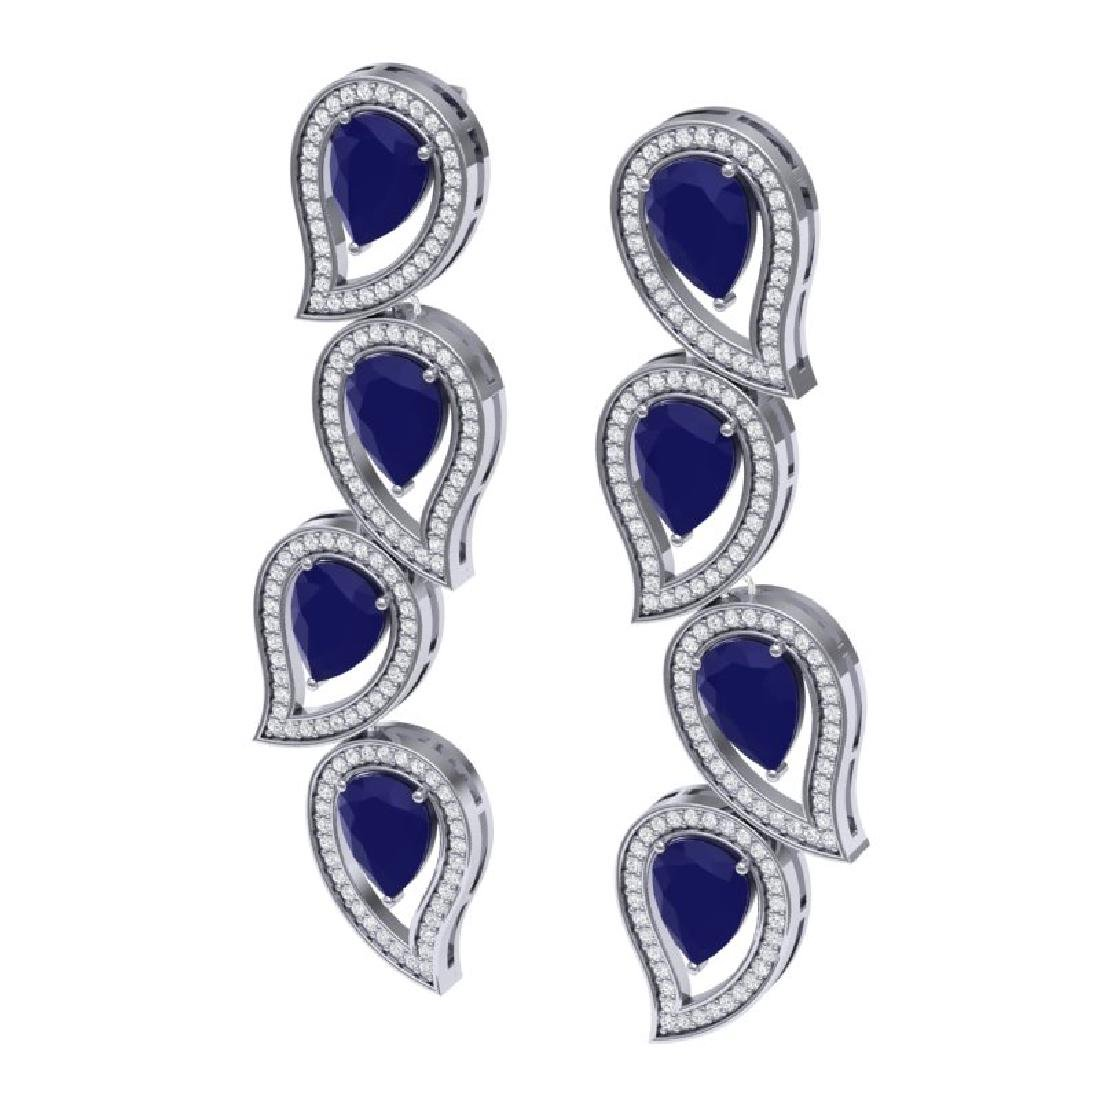 16.44 CTW Royalty Sapphire & VS Diamond Earrings 18K - 2